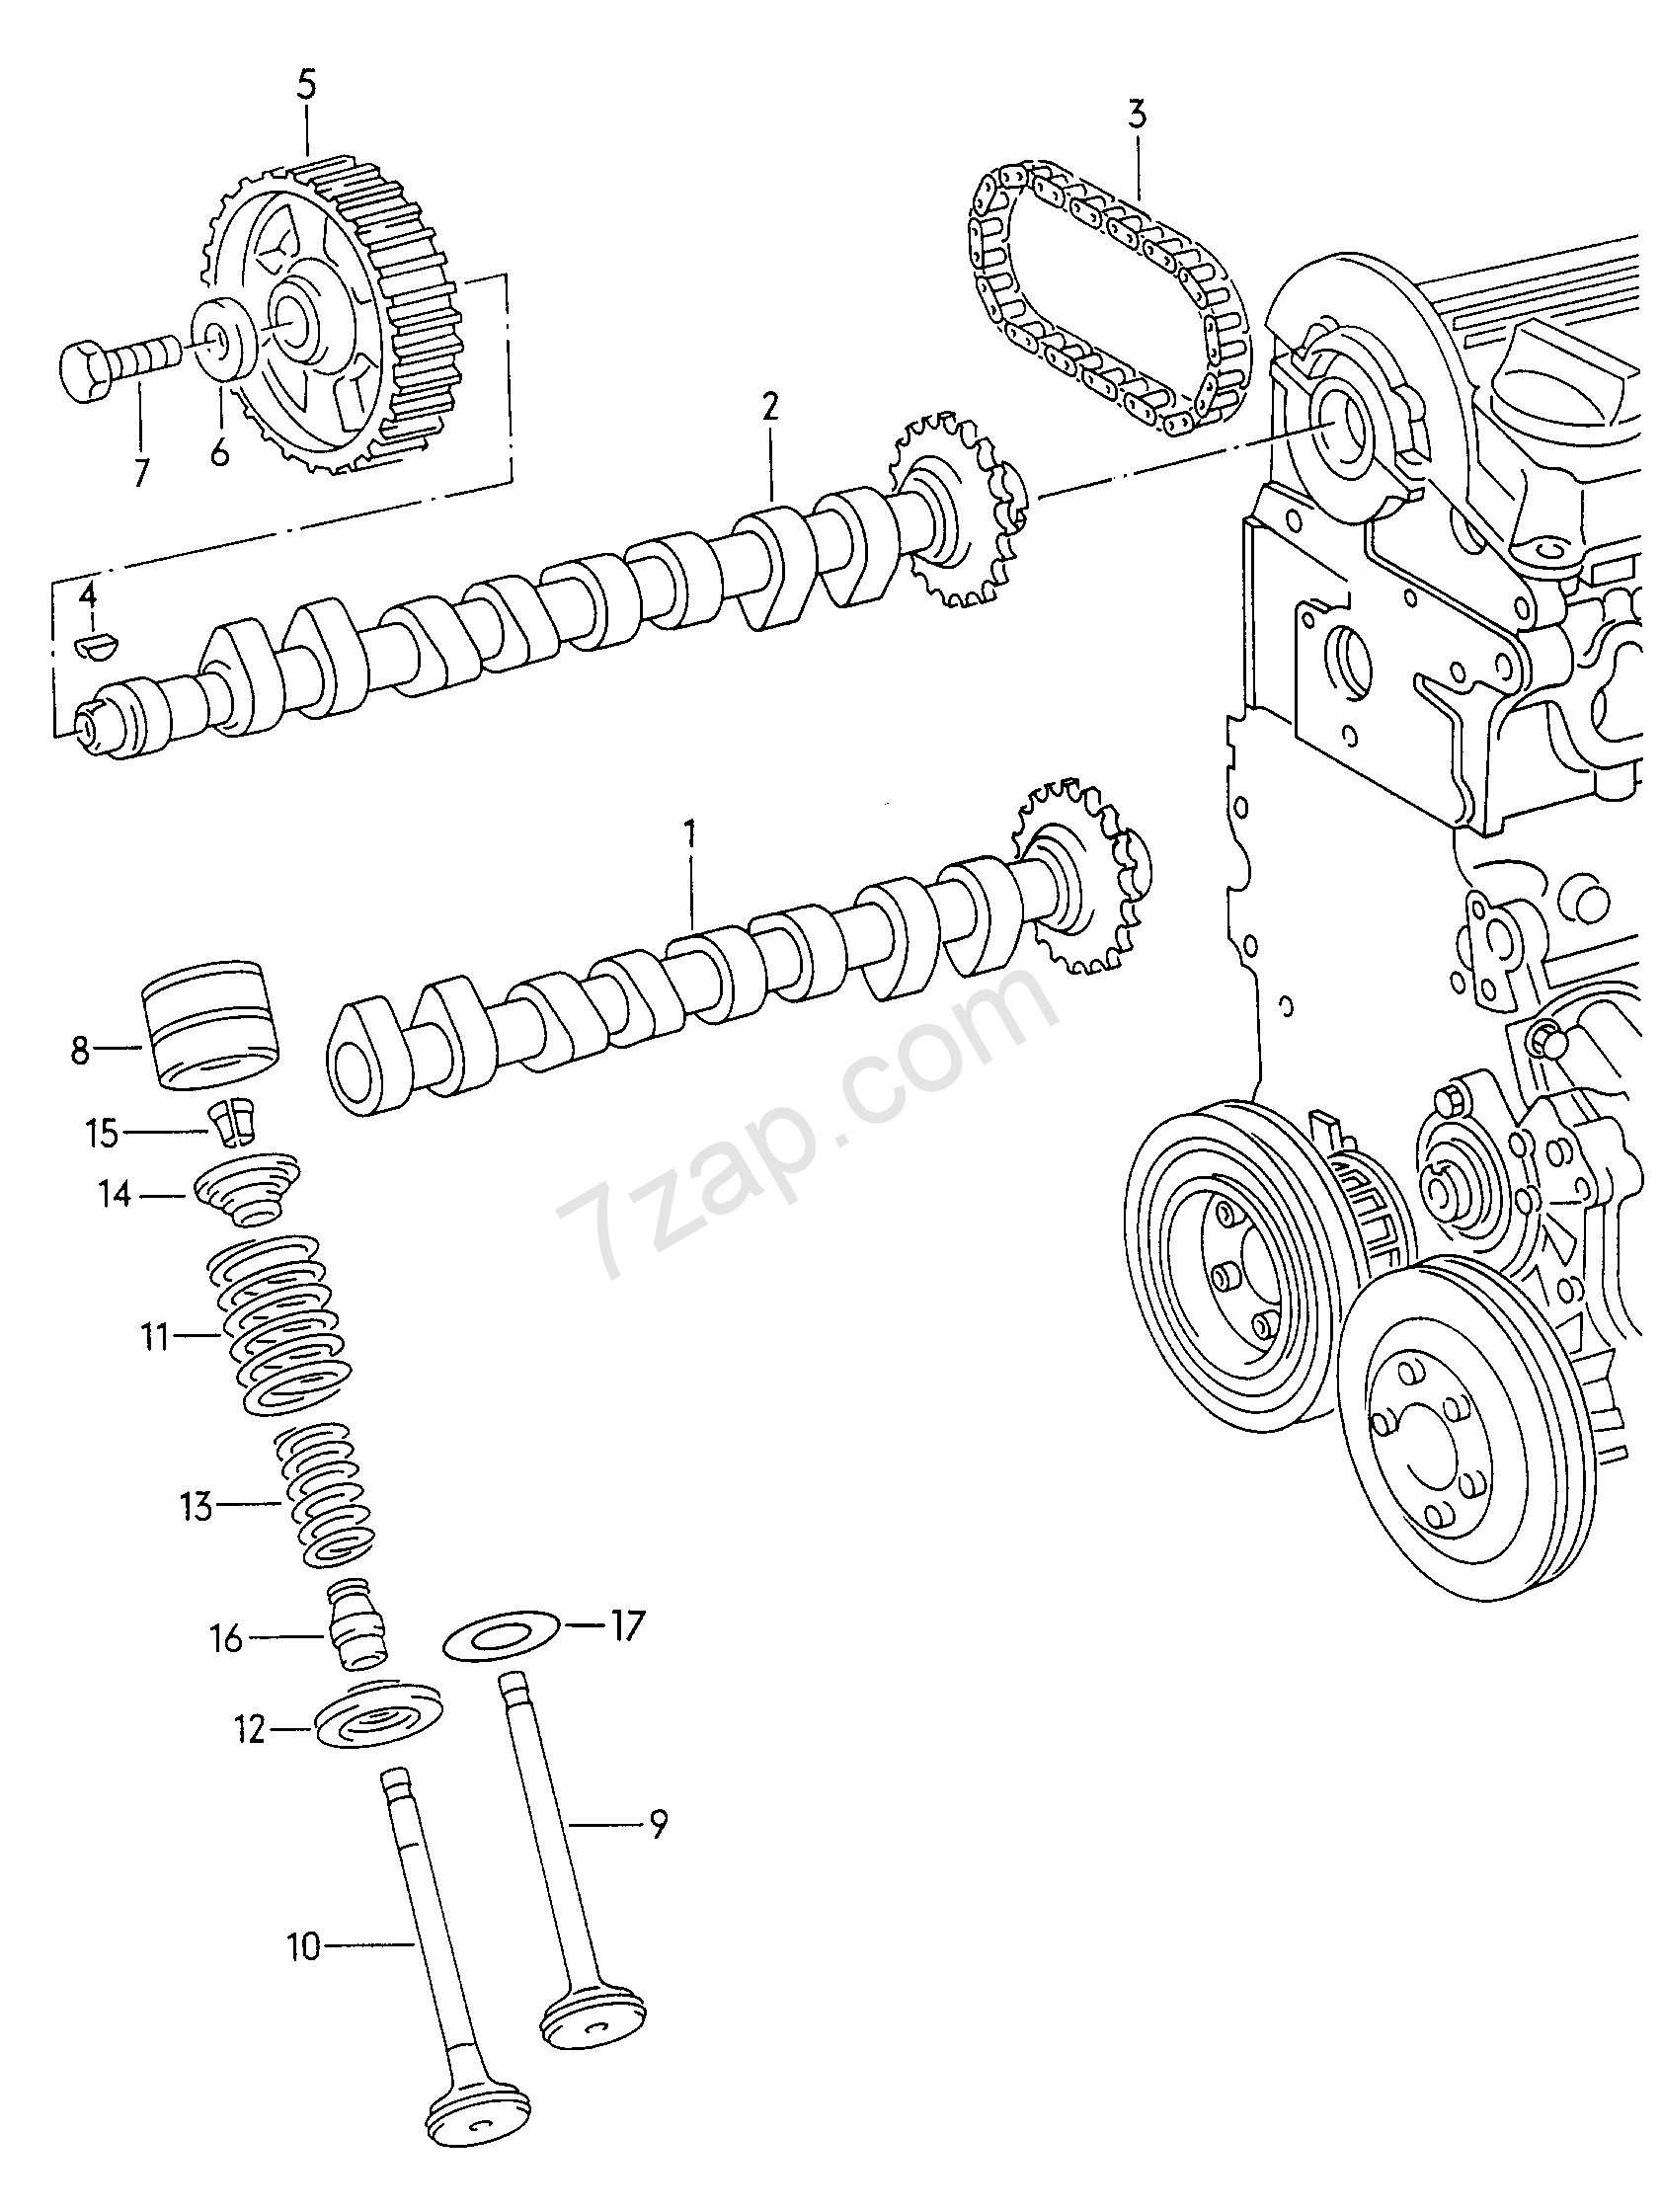 Wiring Diagram Phone Co Free Download Wiring Diagram Schematic